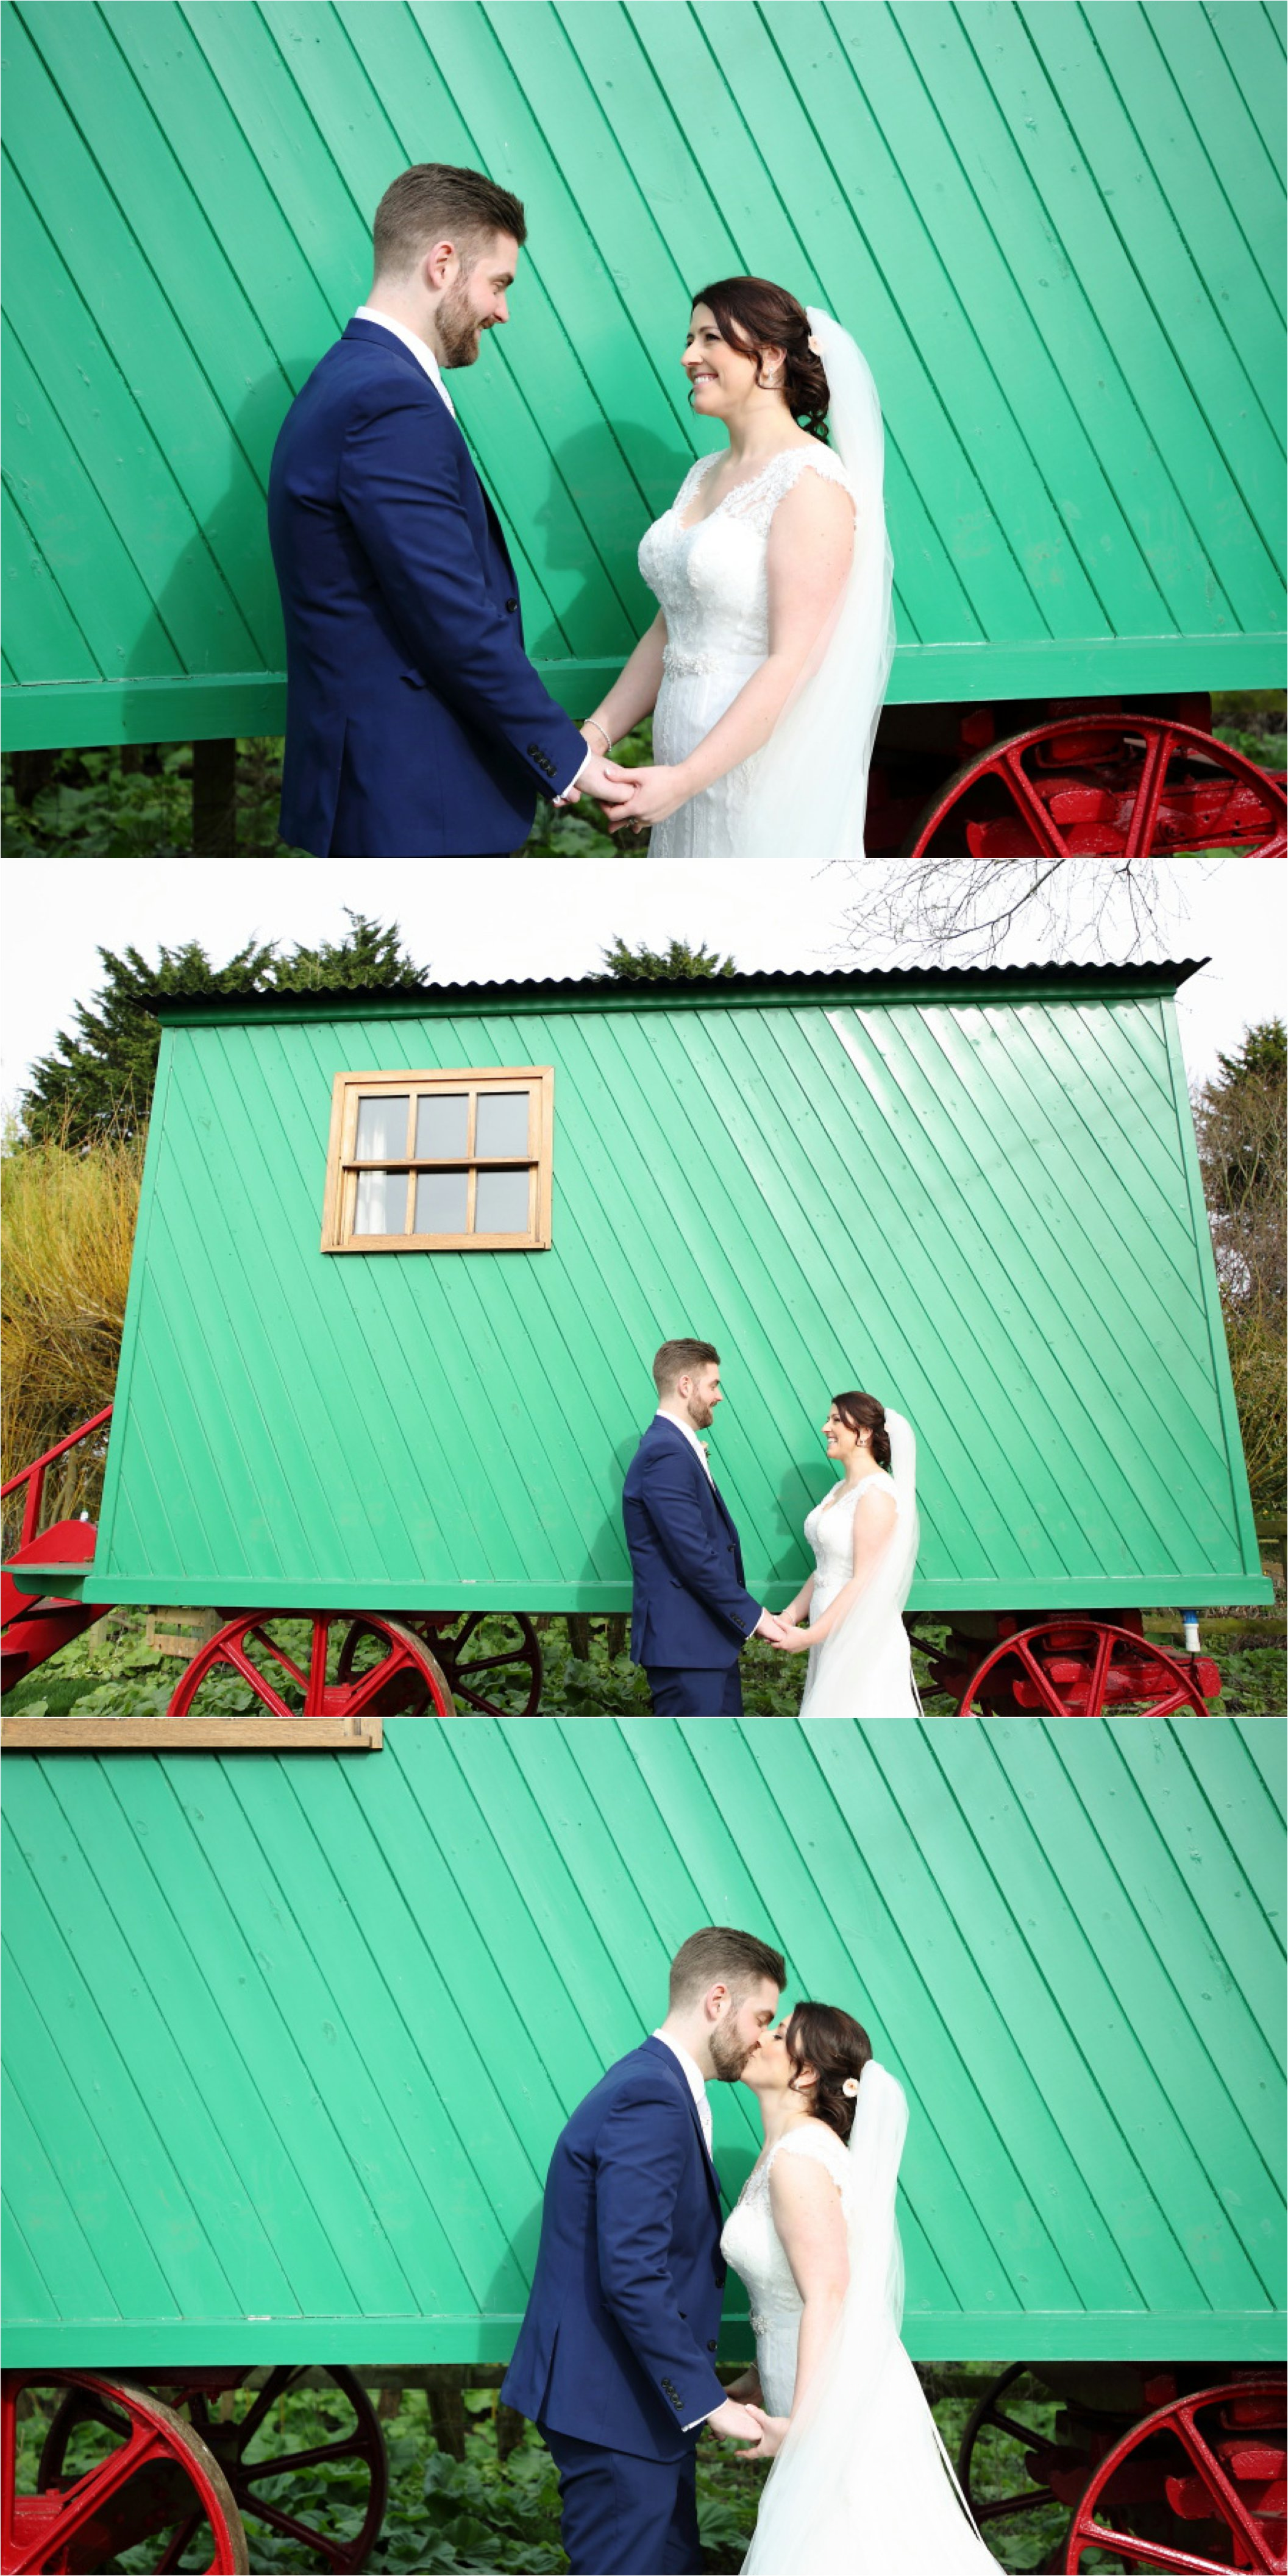 relaxed wedding portraiture at south farm with colourful caravans as backdrop